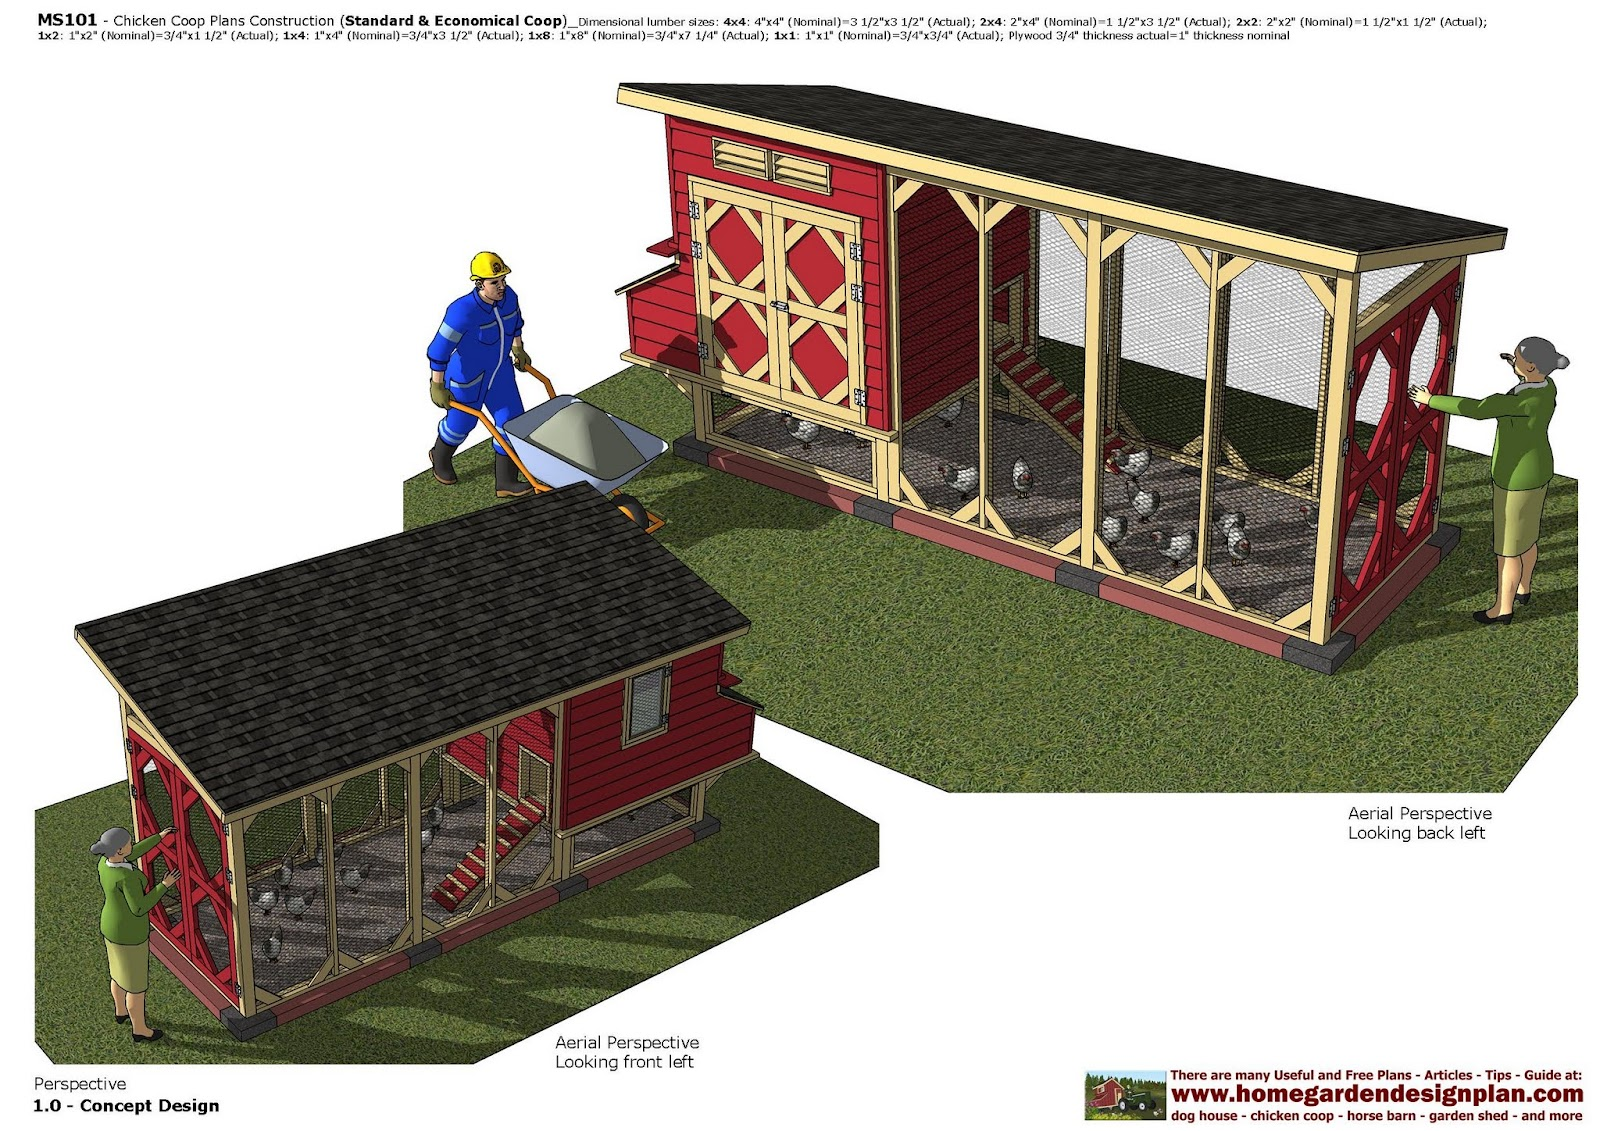 MS101 - Chicken Coop Plans Construction - Chicken Coop Design - How To